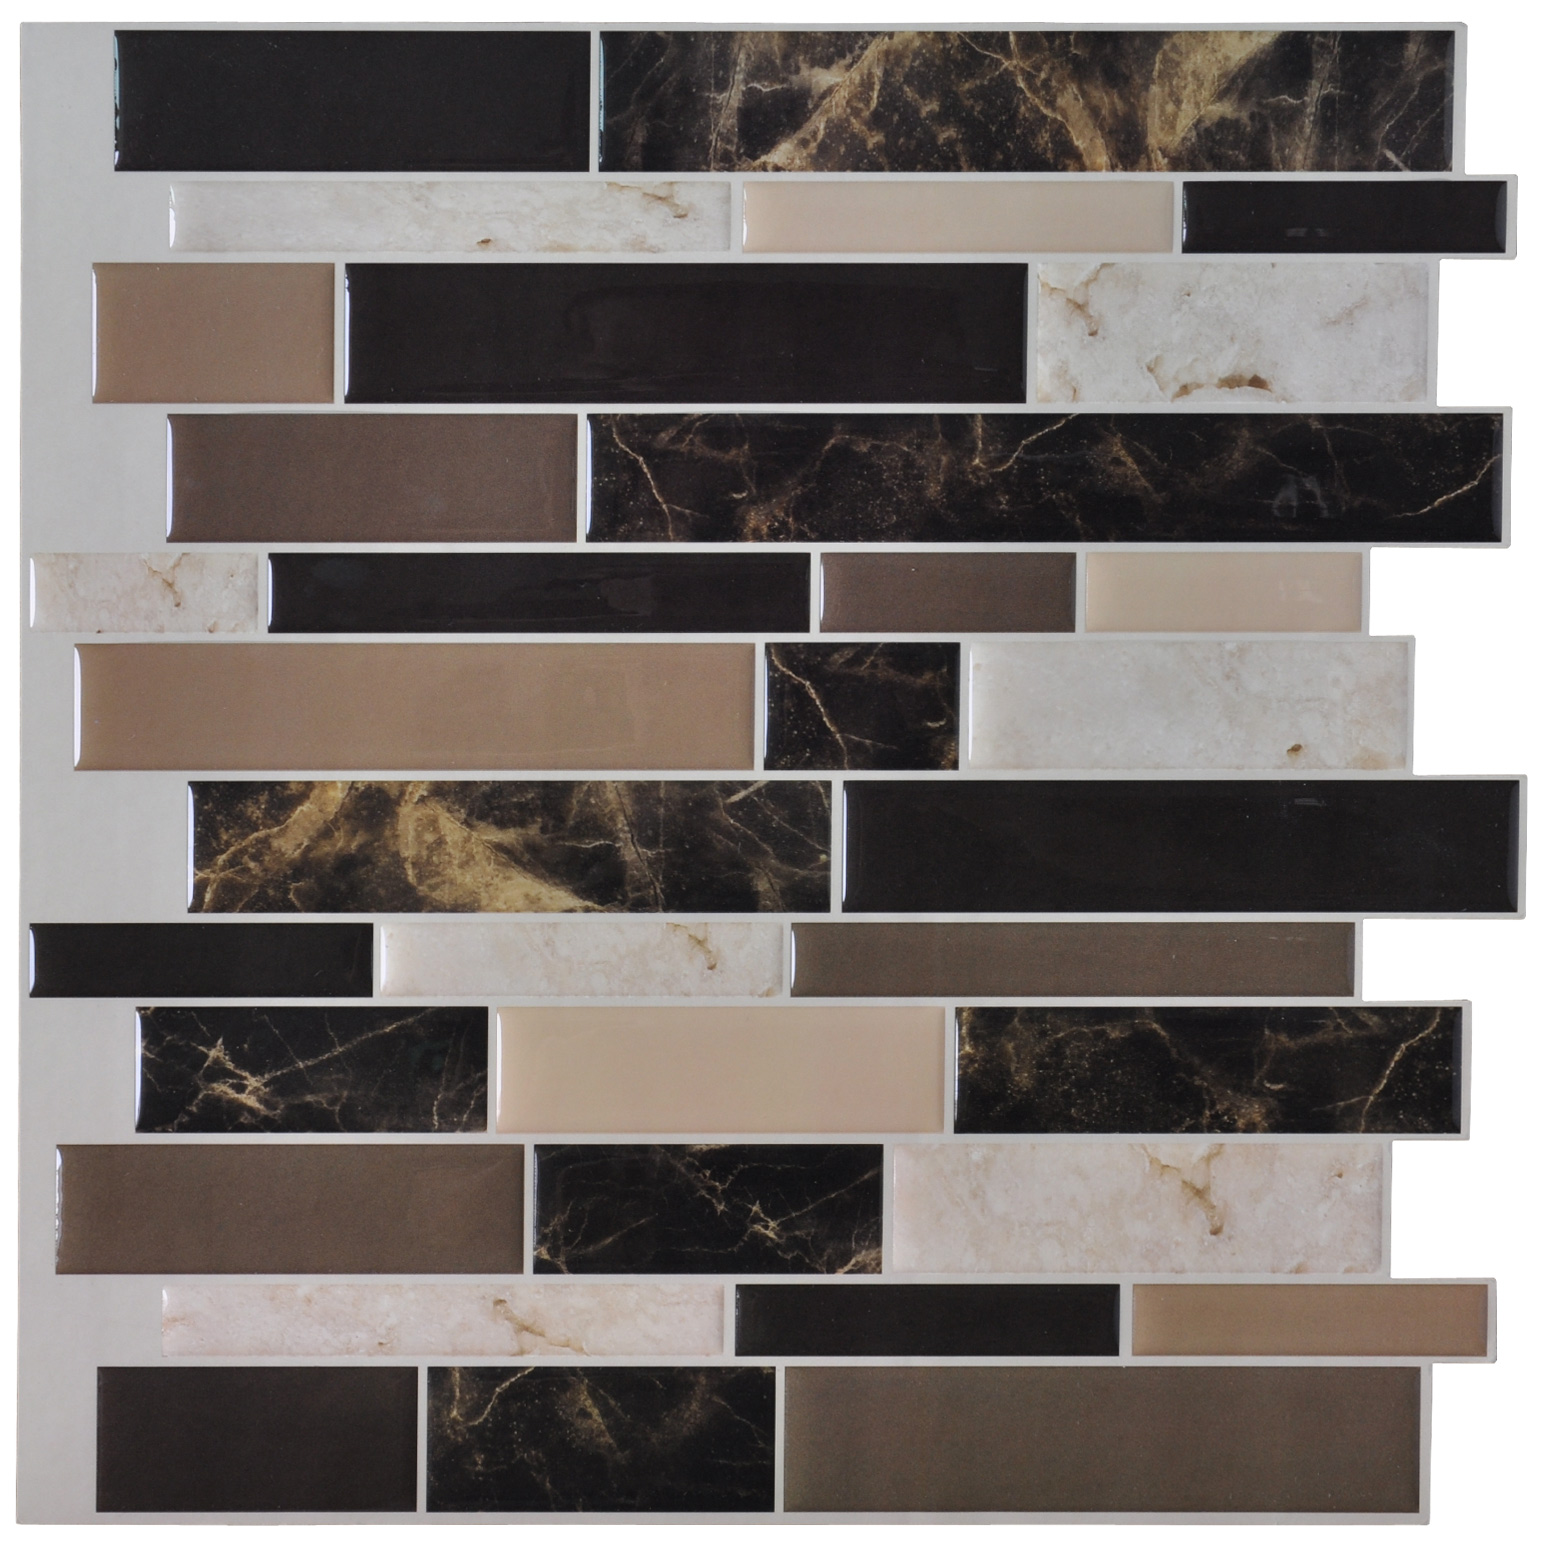 A17024 - Vinyl Self-Adhesive Backsplash Tiles for Kitchen, 12